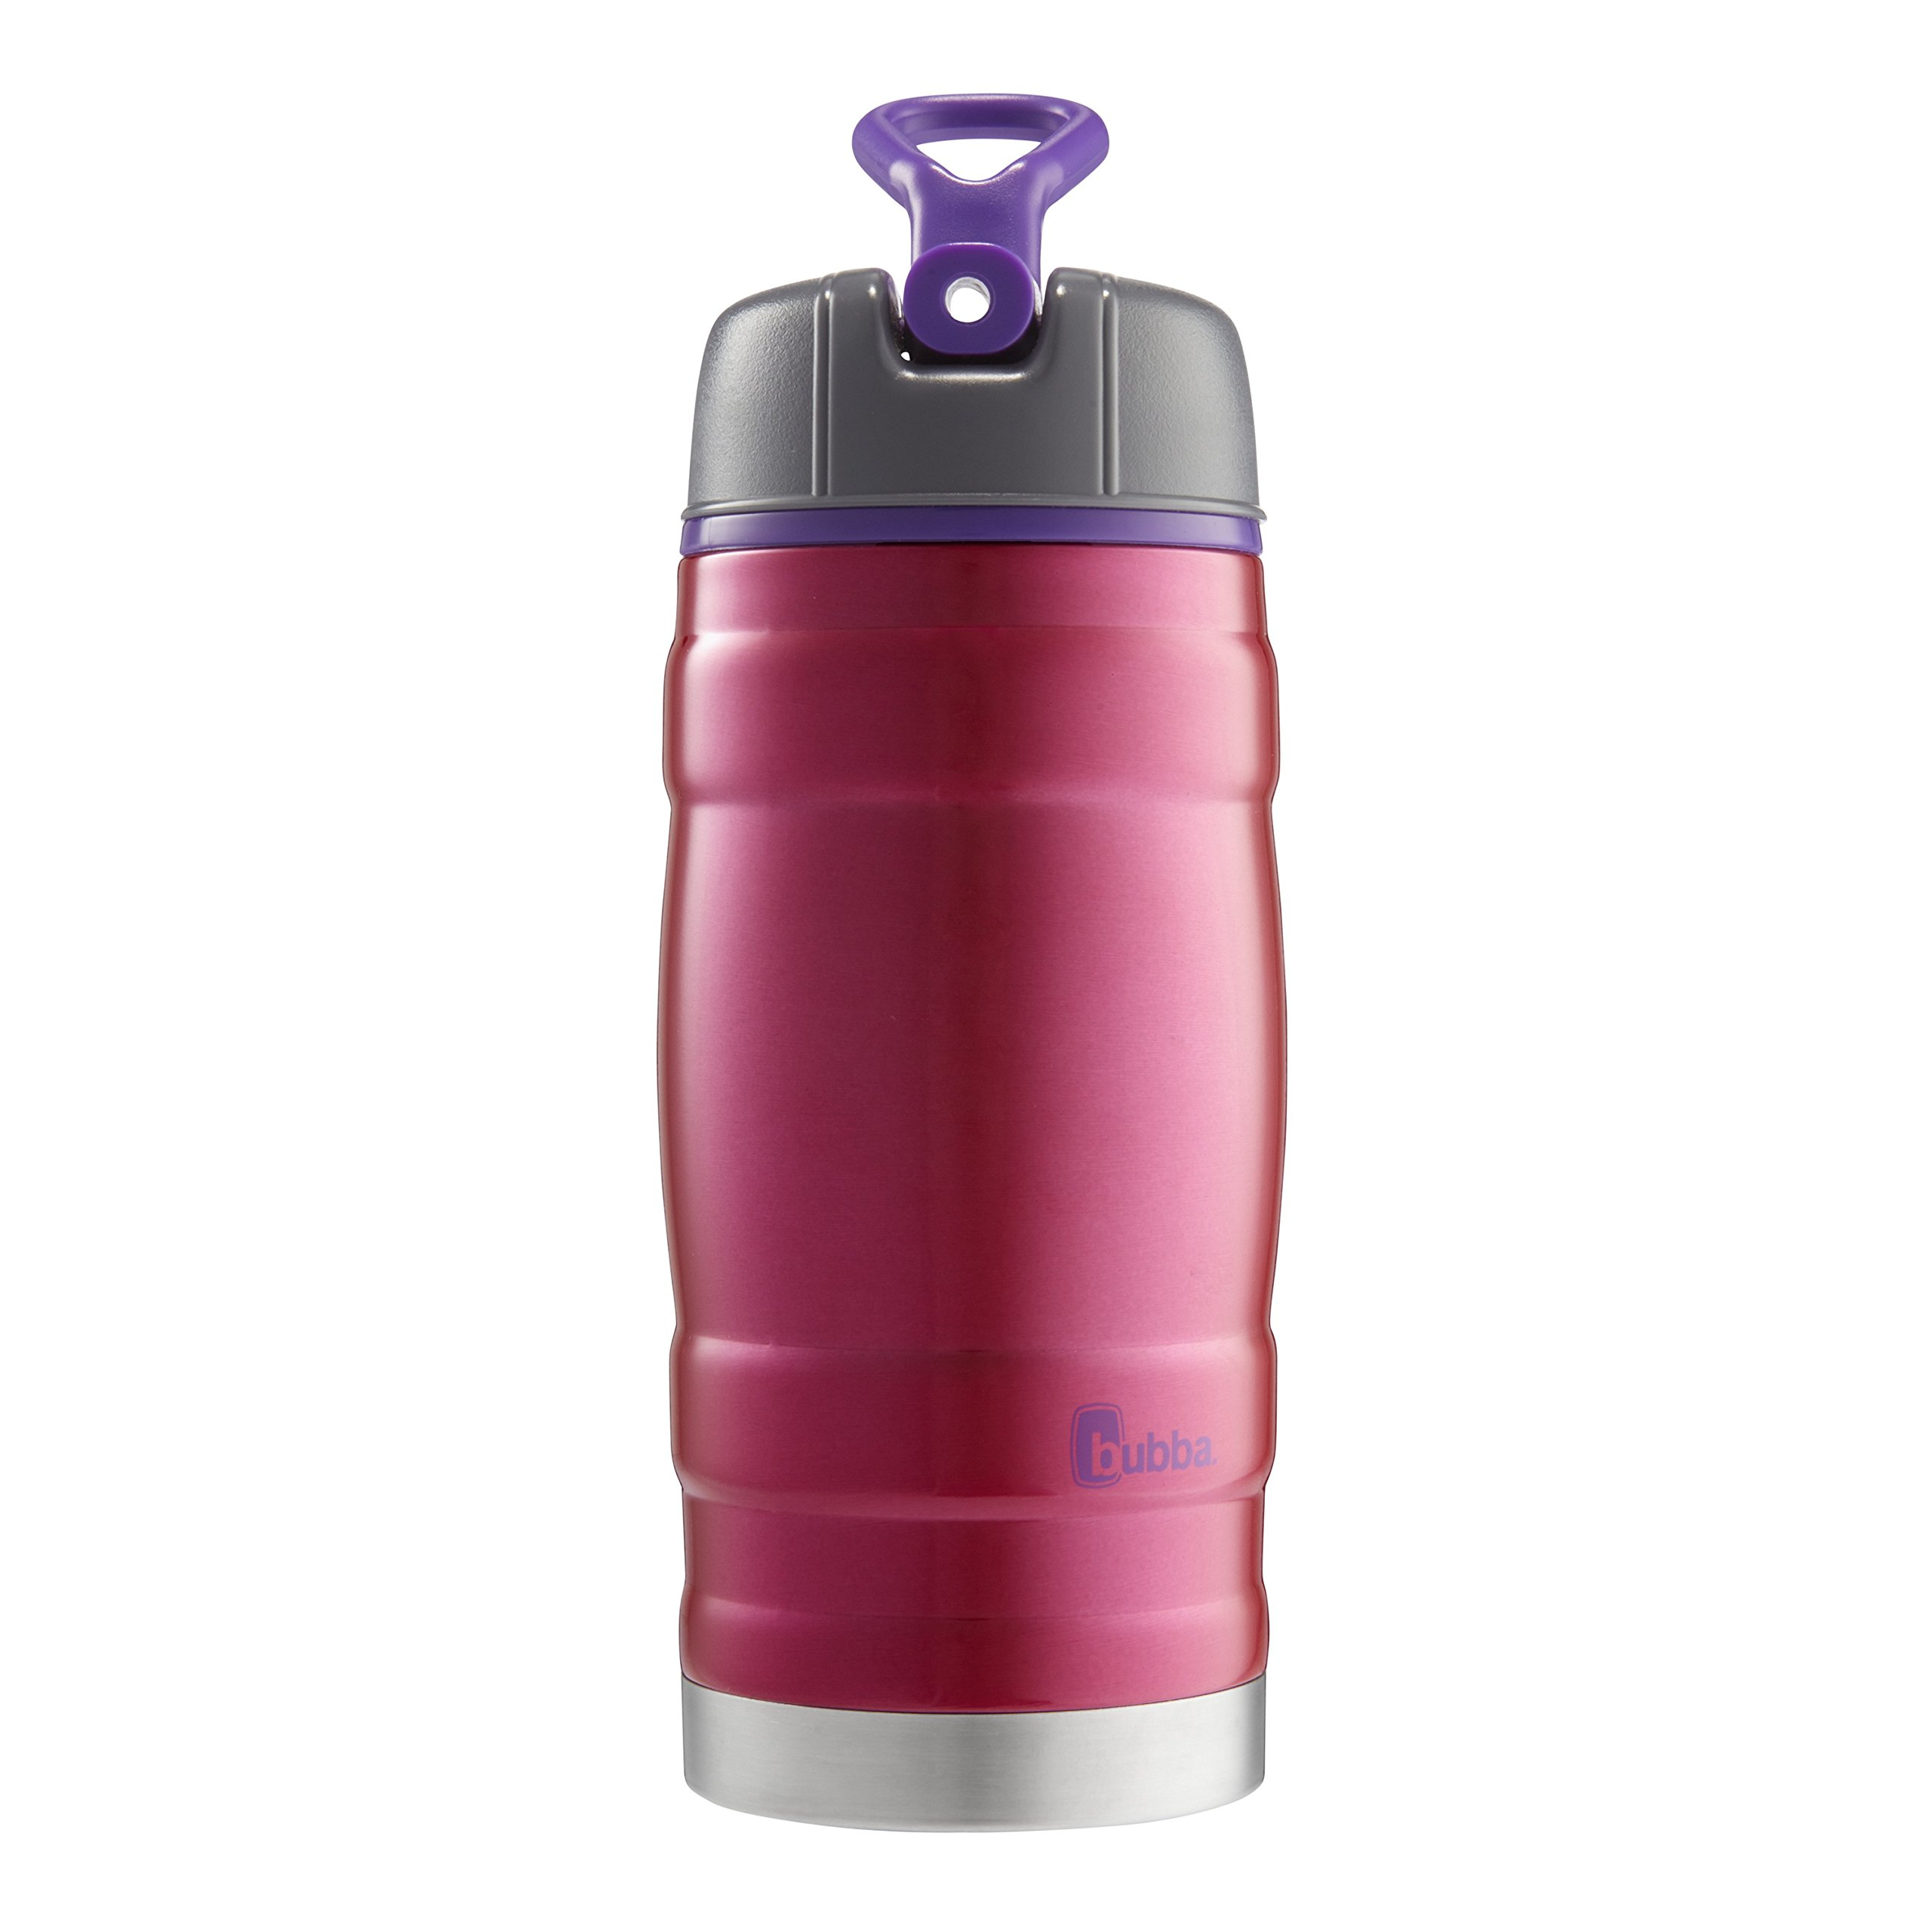 Bubba HERO Kids Sport Vacuum-Insulated Stainless Steel Water Bottle, 12 oz, Pink